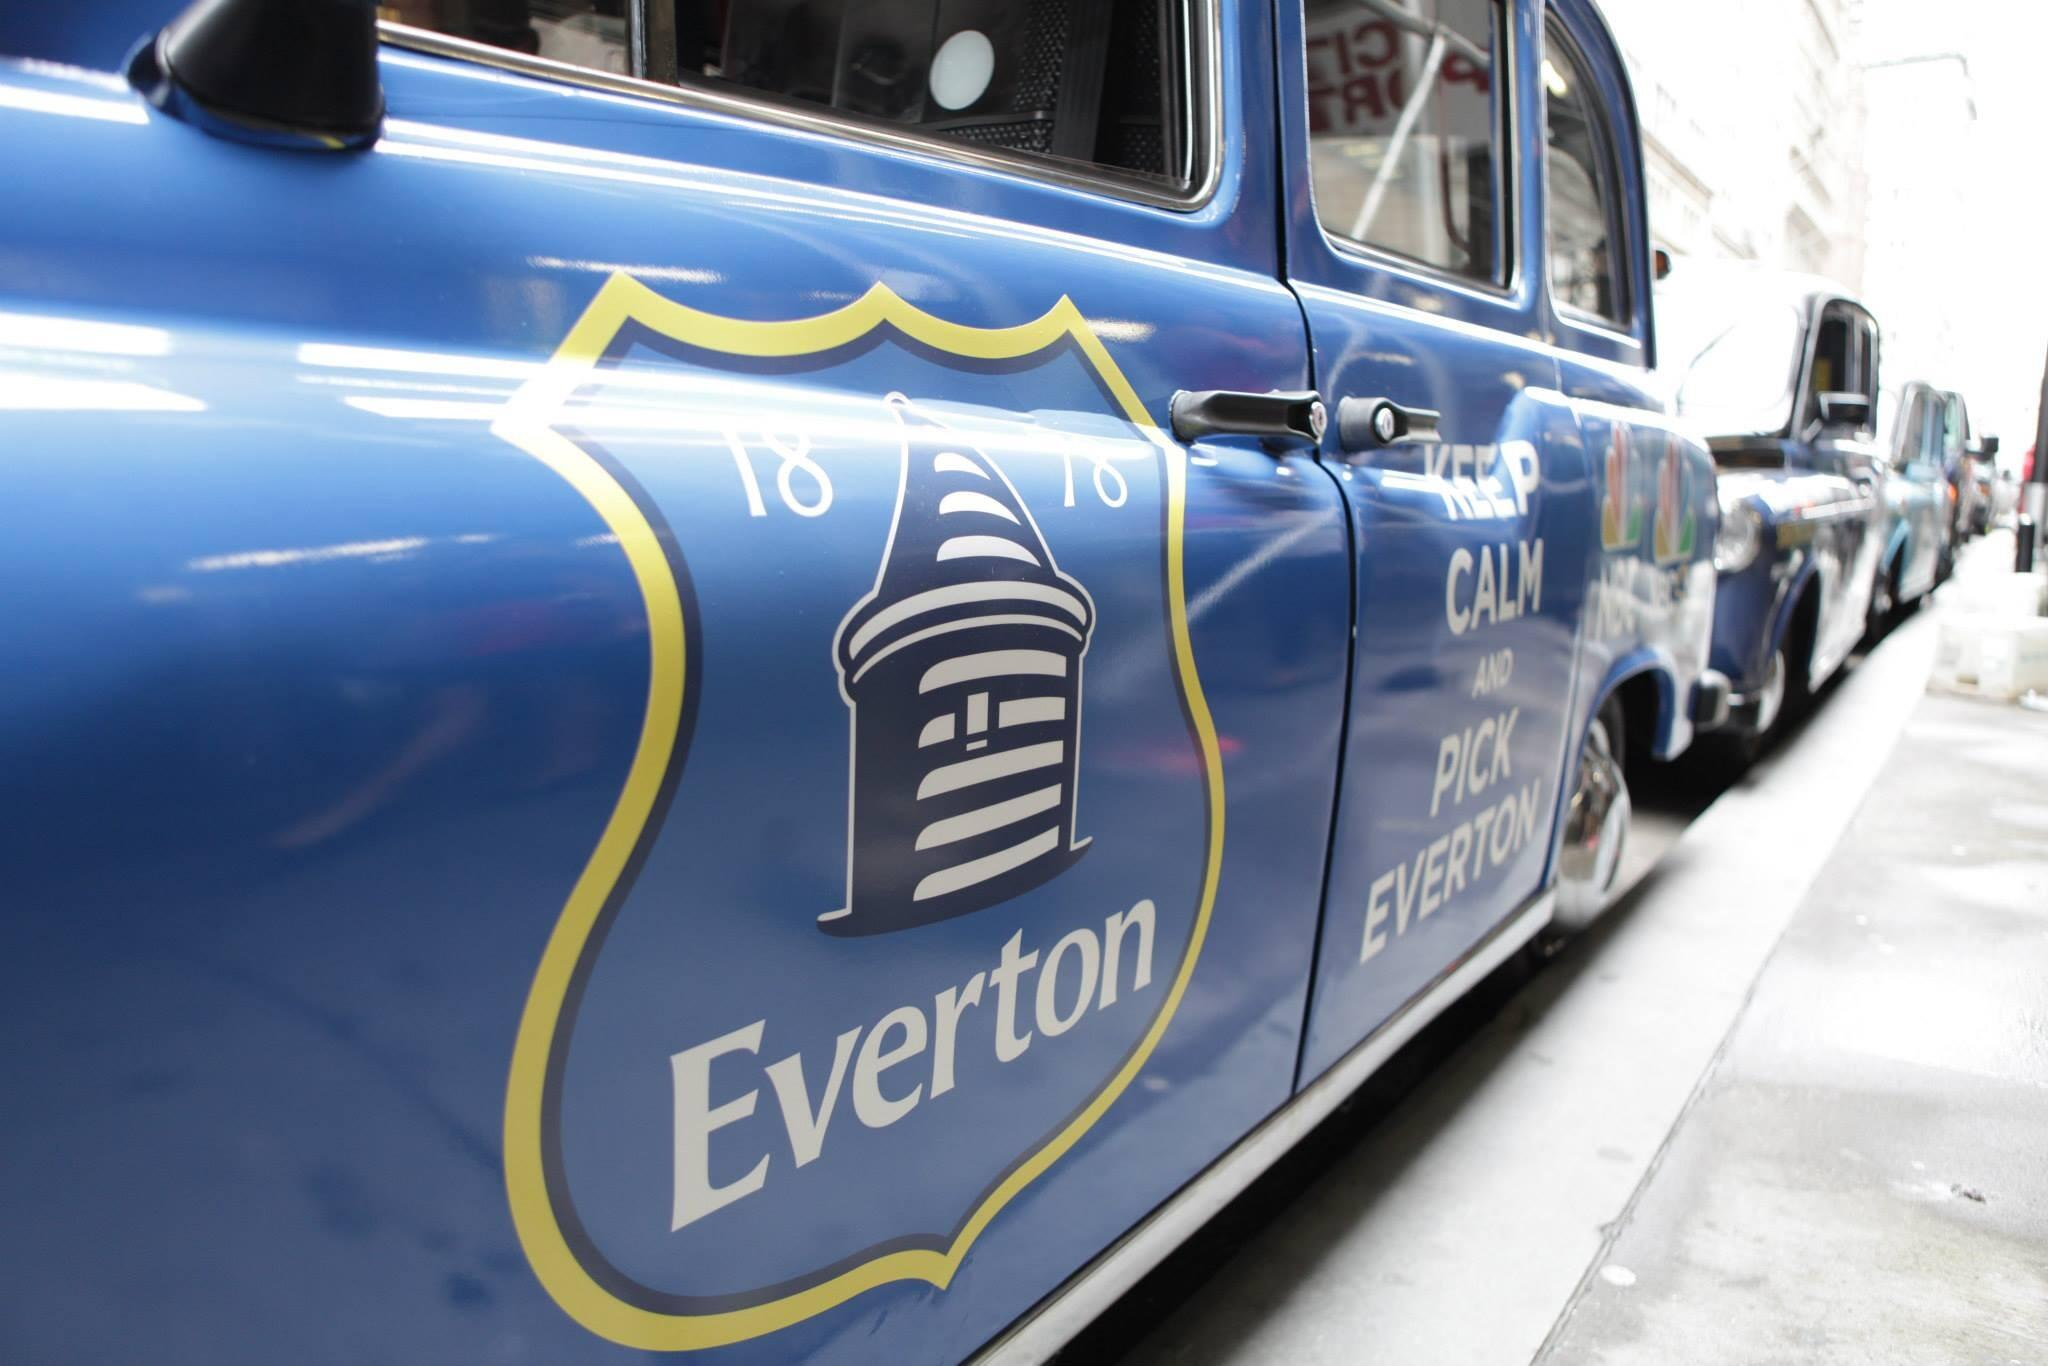 NBC unveil Tottenham, Arsenal, Everton & Liverpool London cabs in New York [Pictures]